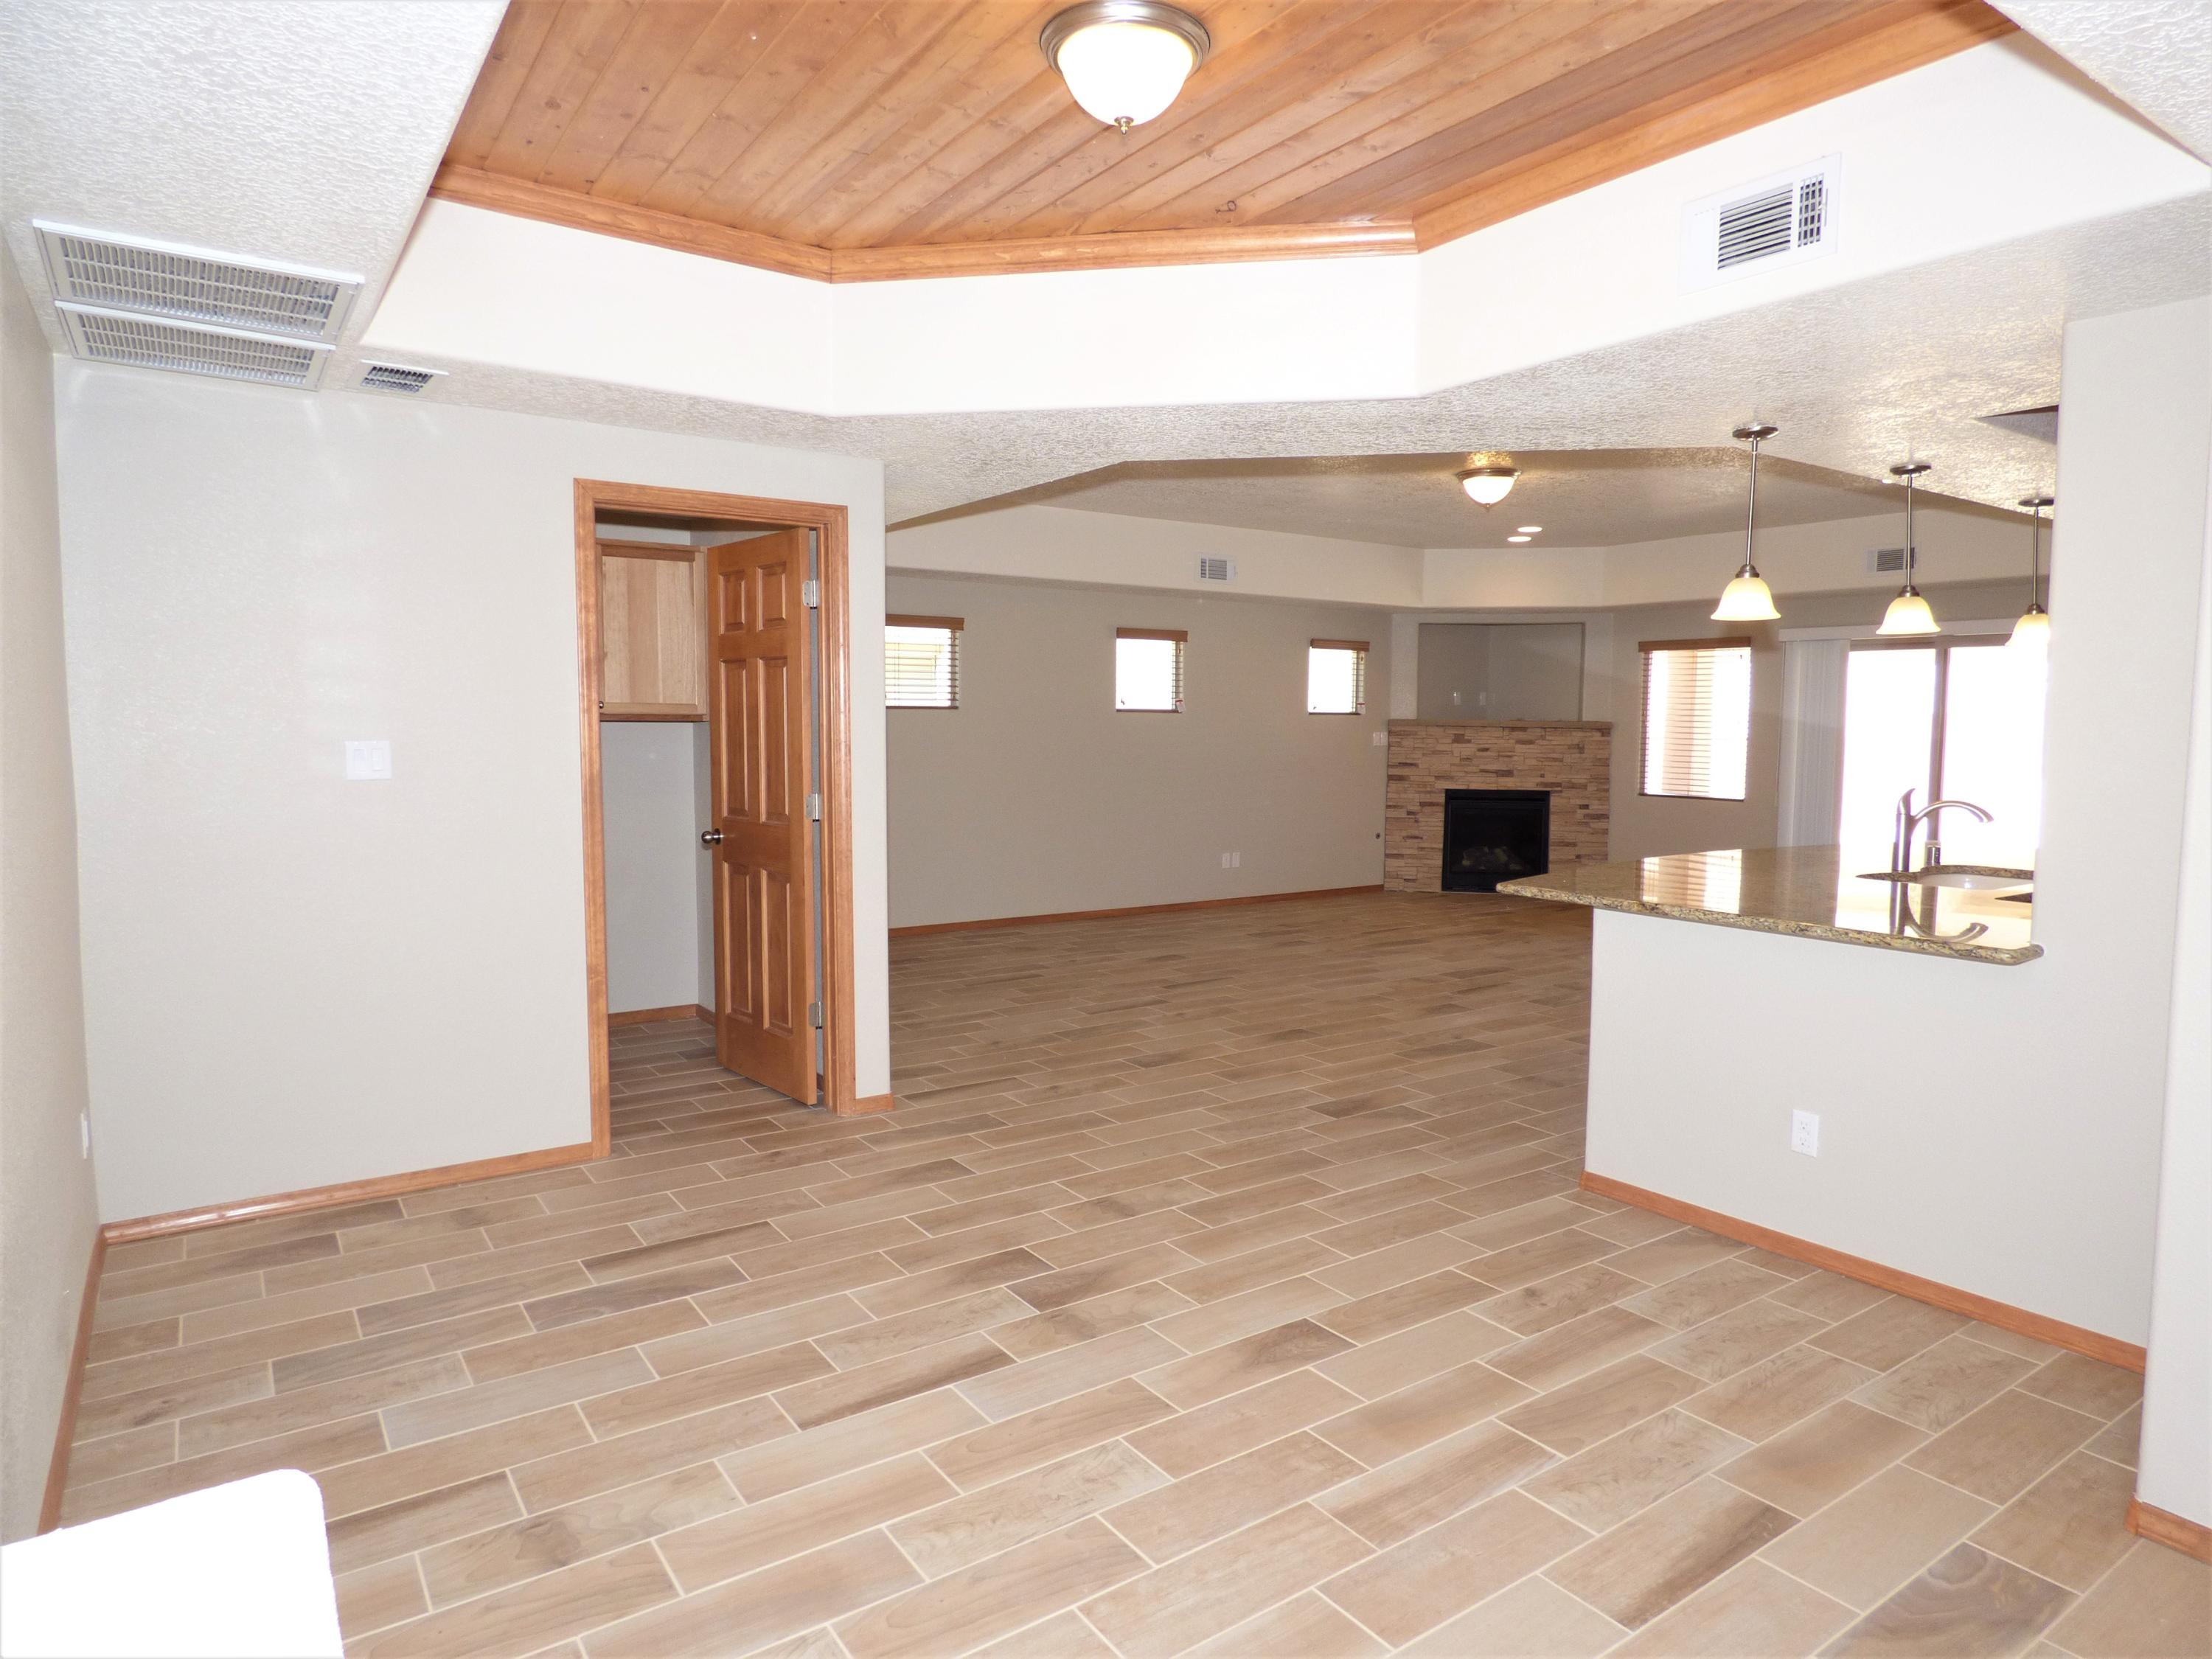 Northwest Albuquerque and Northwest Heights Homes for Sale -  Spa,  6401 NW LOS CANTOS Avenue